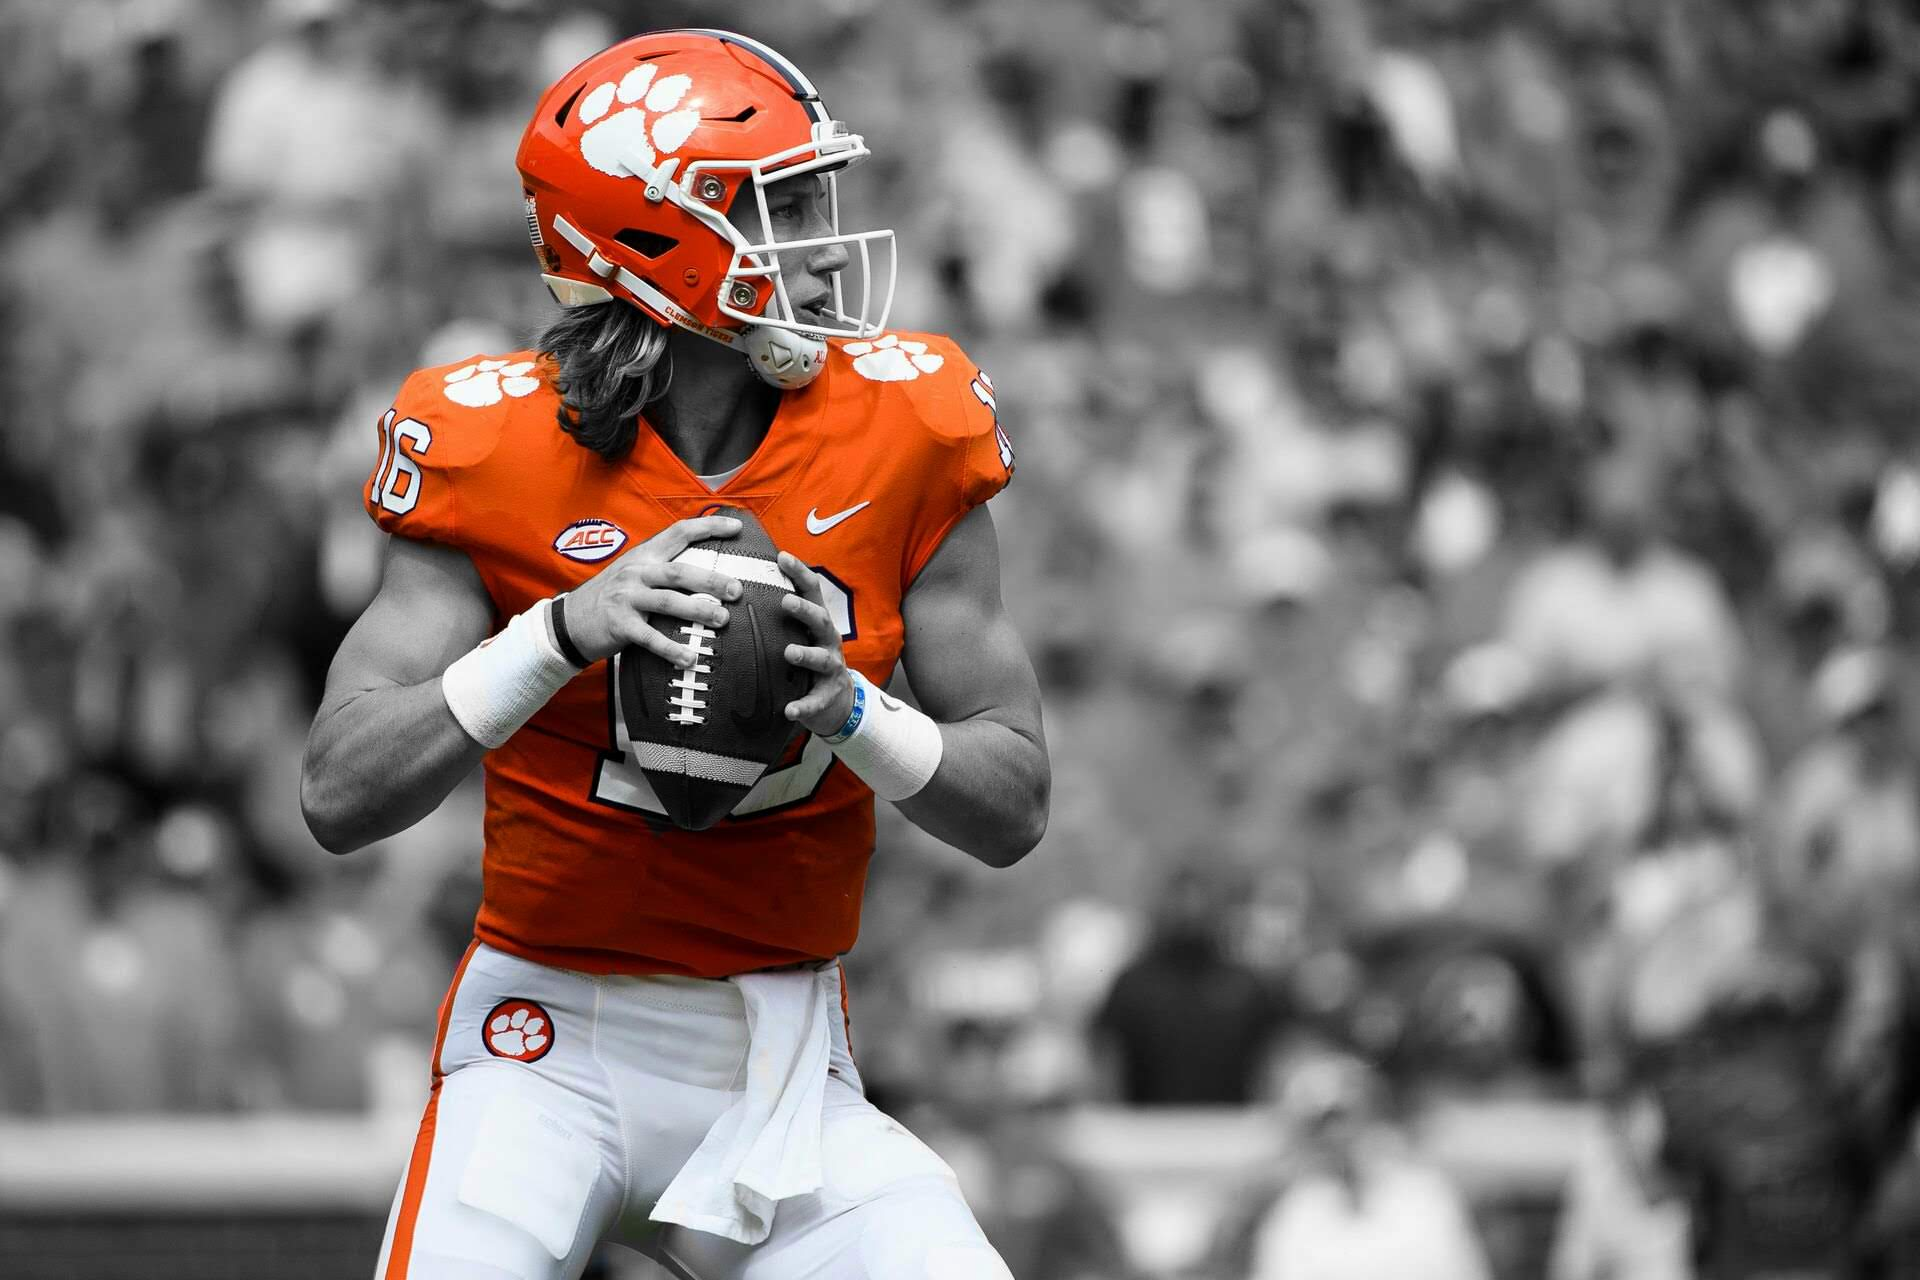 CFBHome: Checking Out the Week 2 Odds